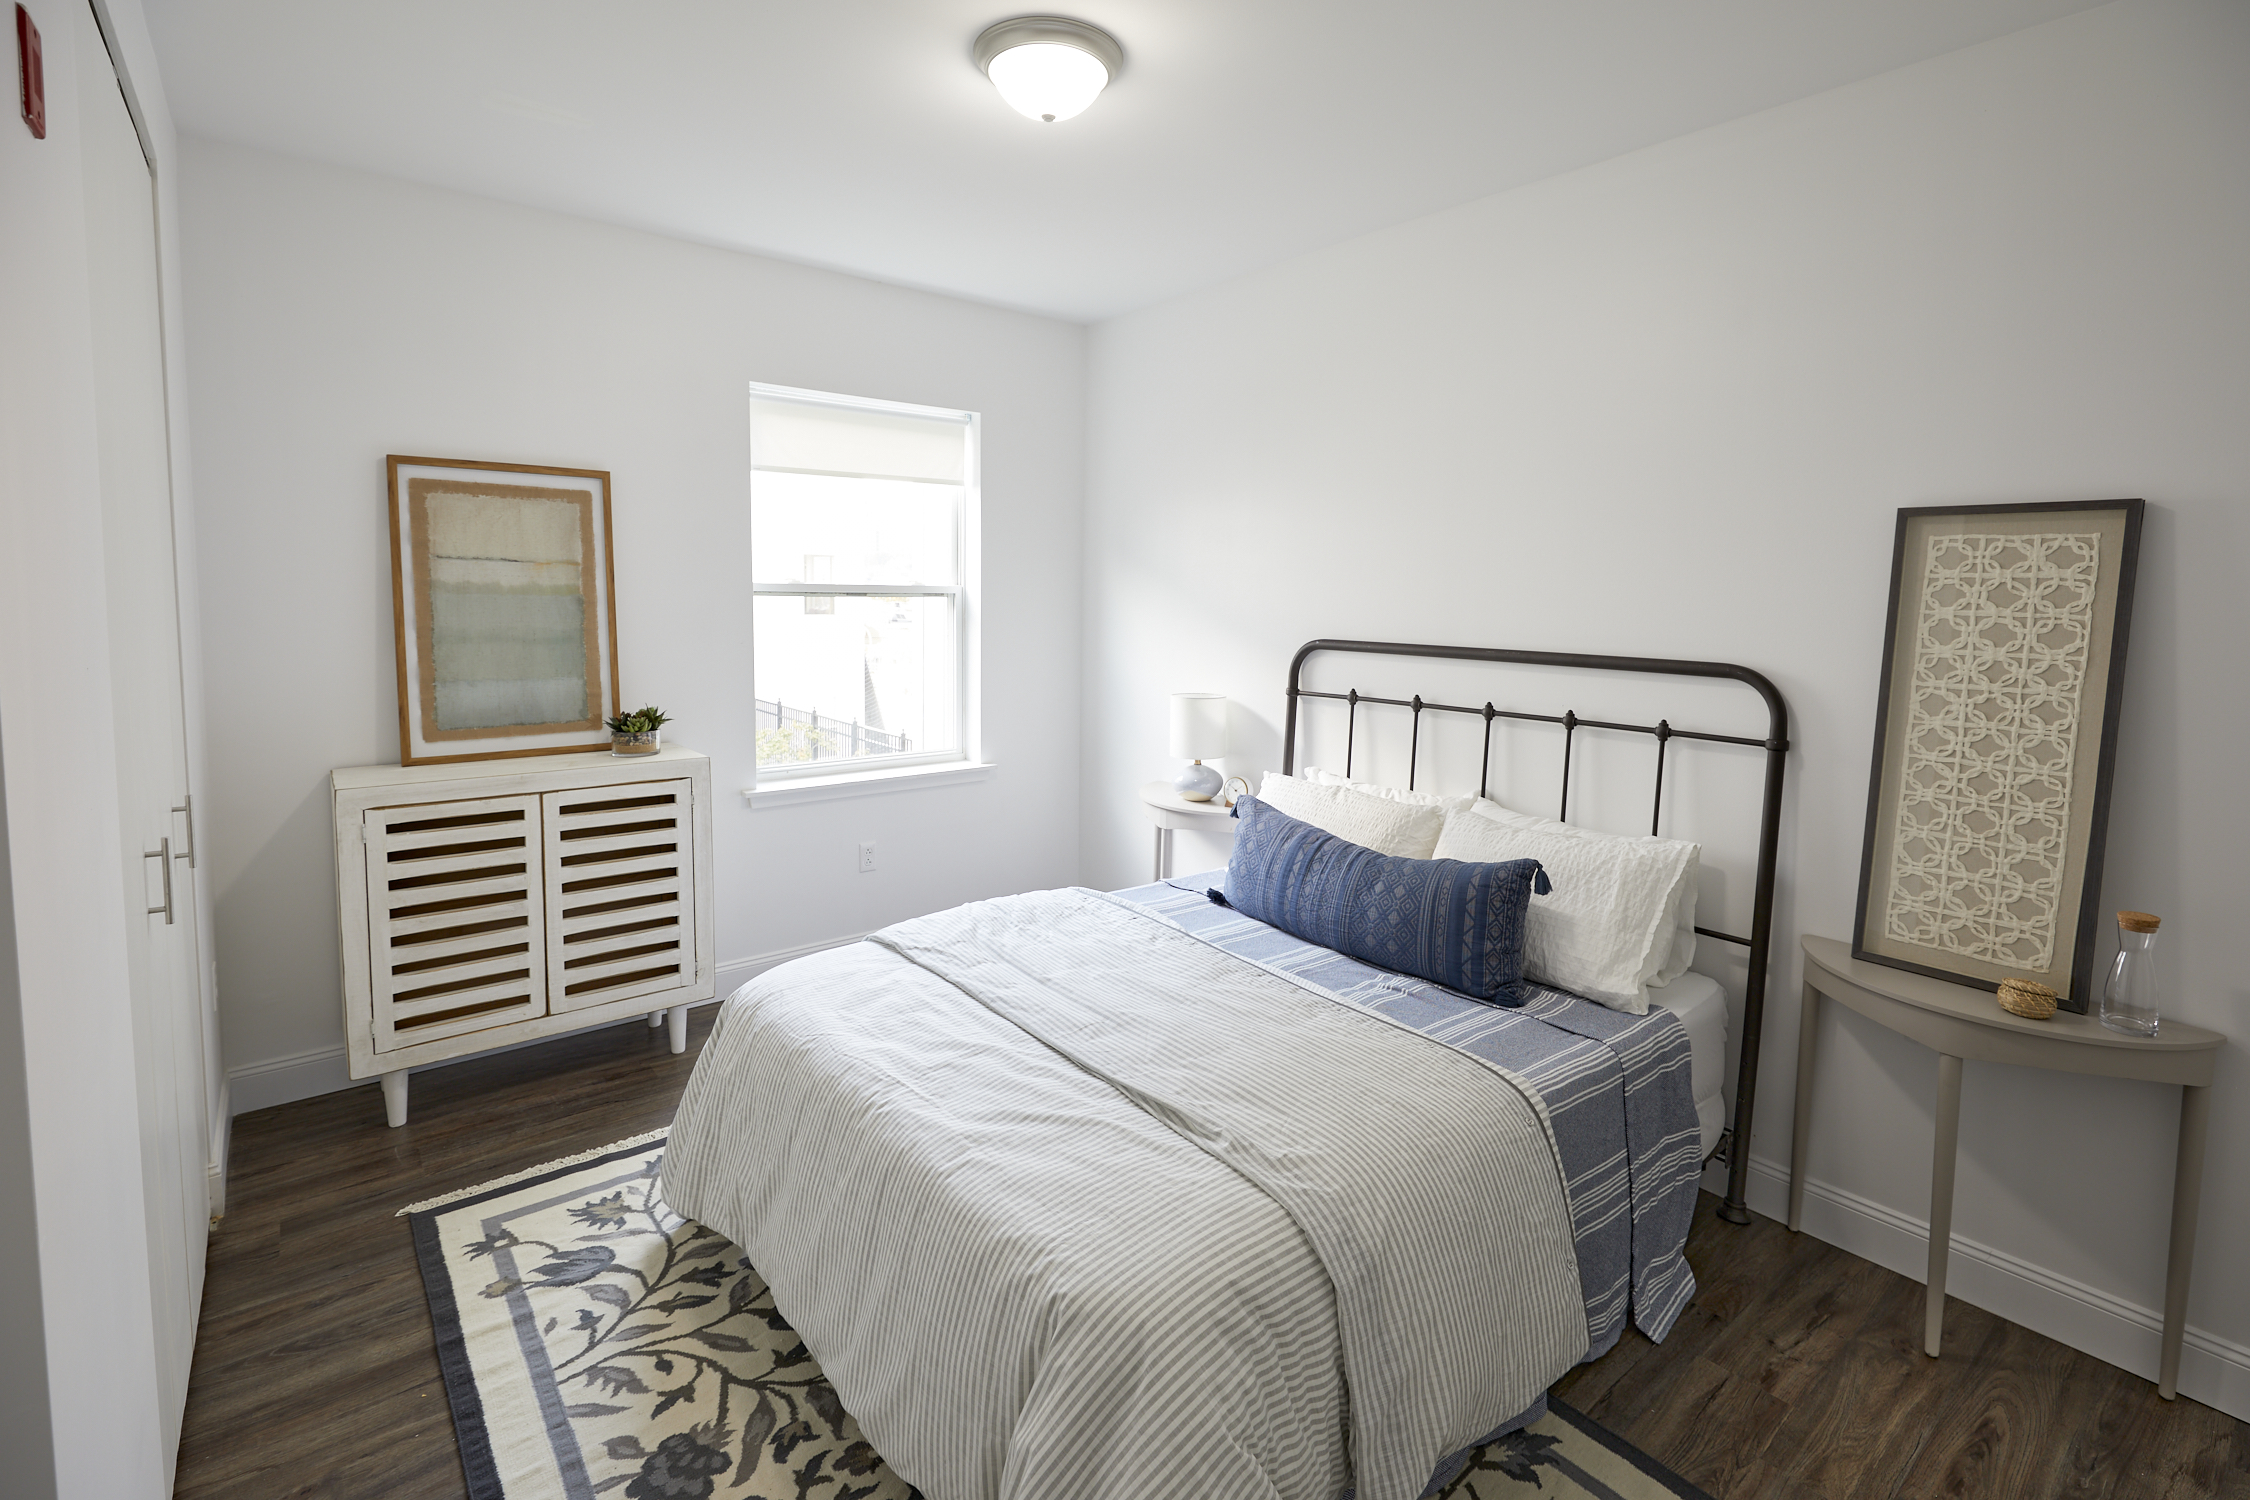 132 Marginal Way – The Linden – Apartment 346  **FREE Month + $250 Amazon Gift Card!**